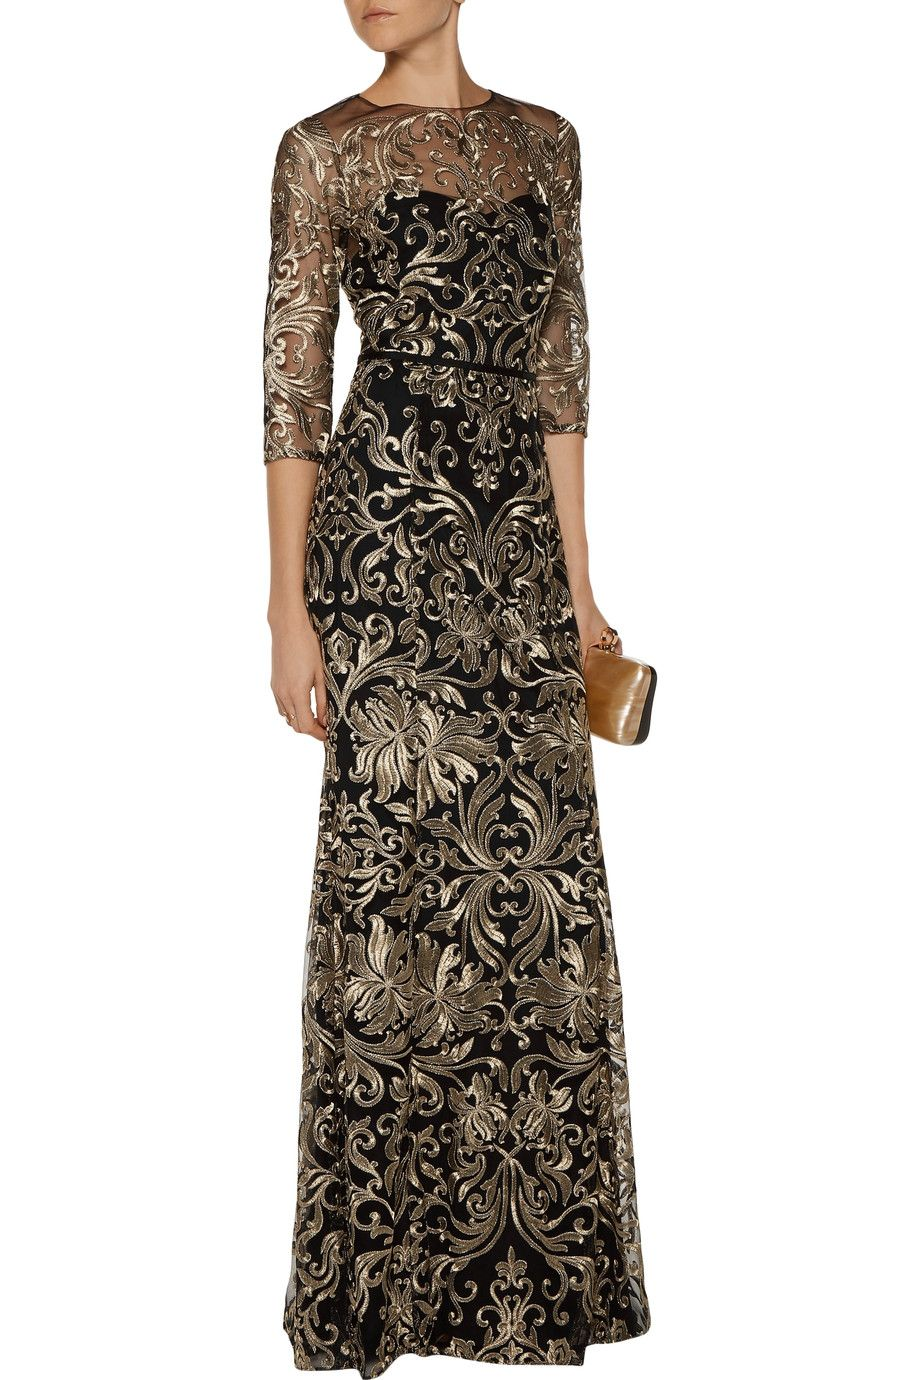 Shop On Sale Marchesa Notte Metallic Embroidered Tulle Gown Browse